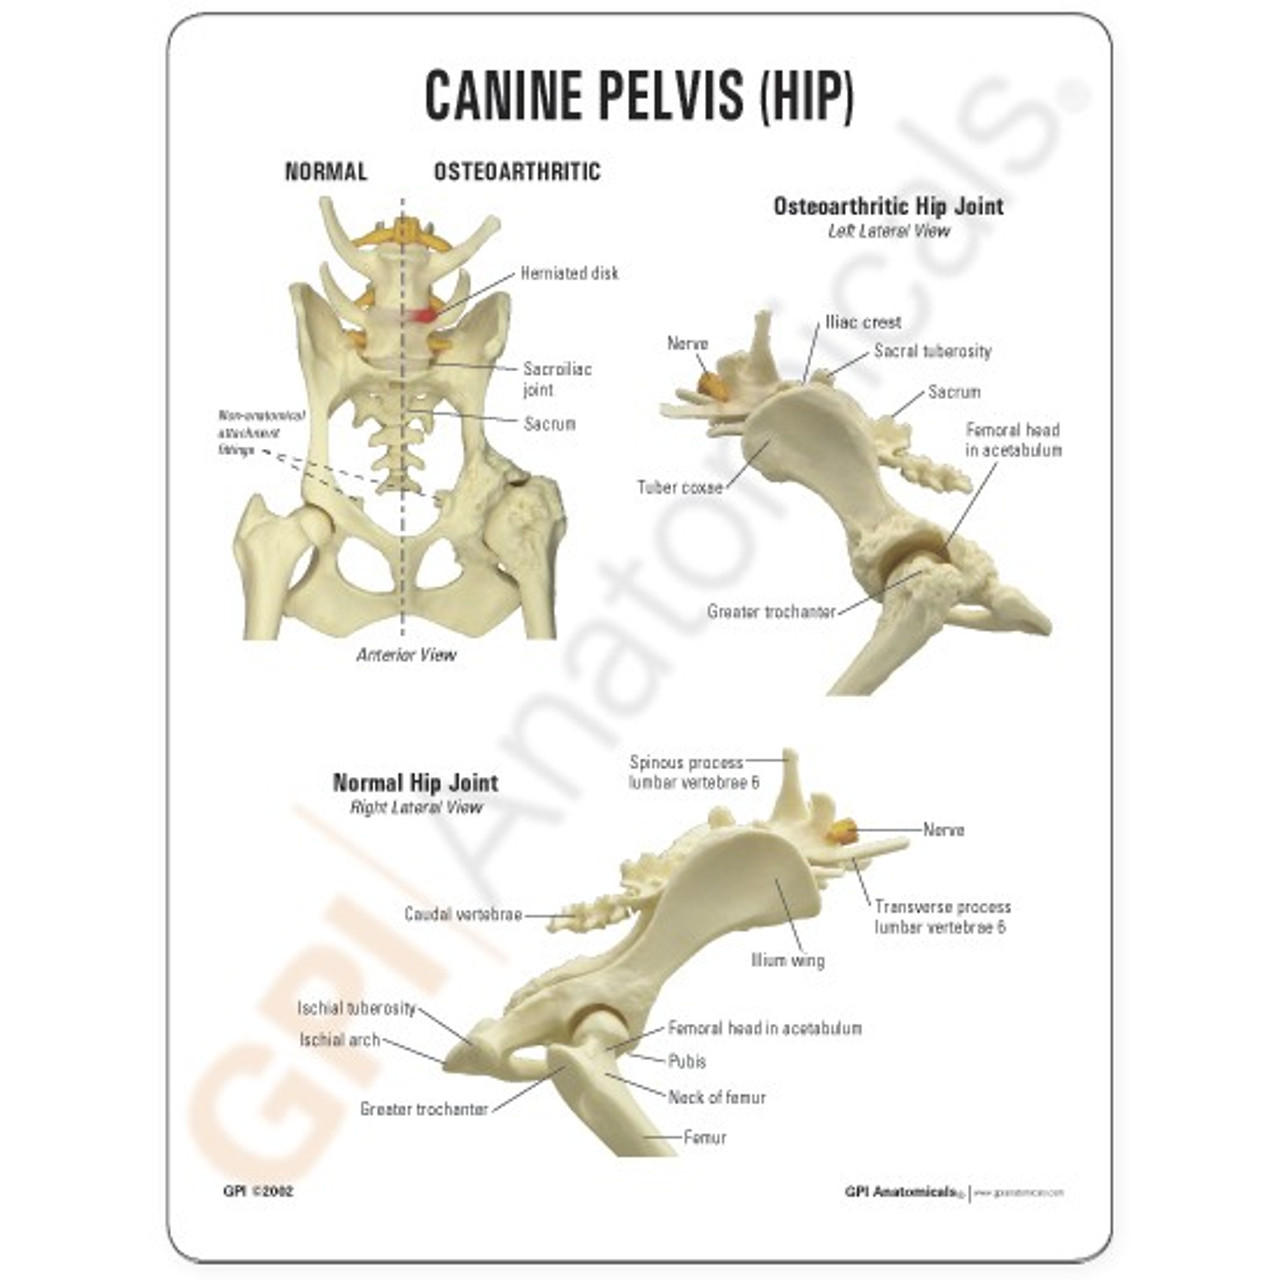 Canine Pelvis and Hip Model Description Card